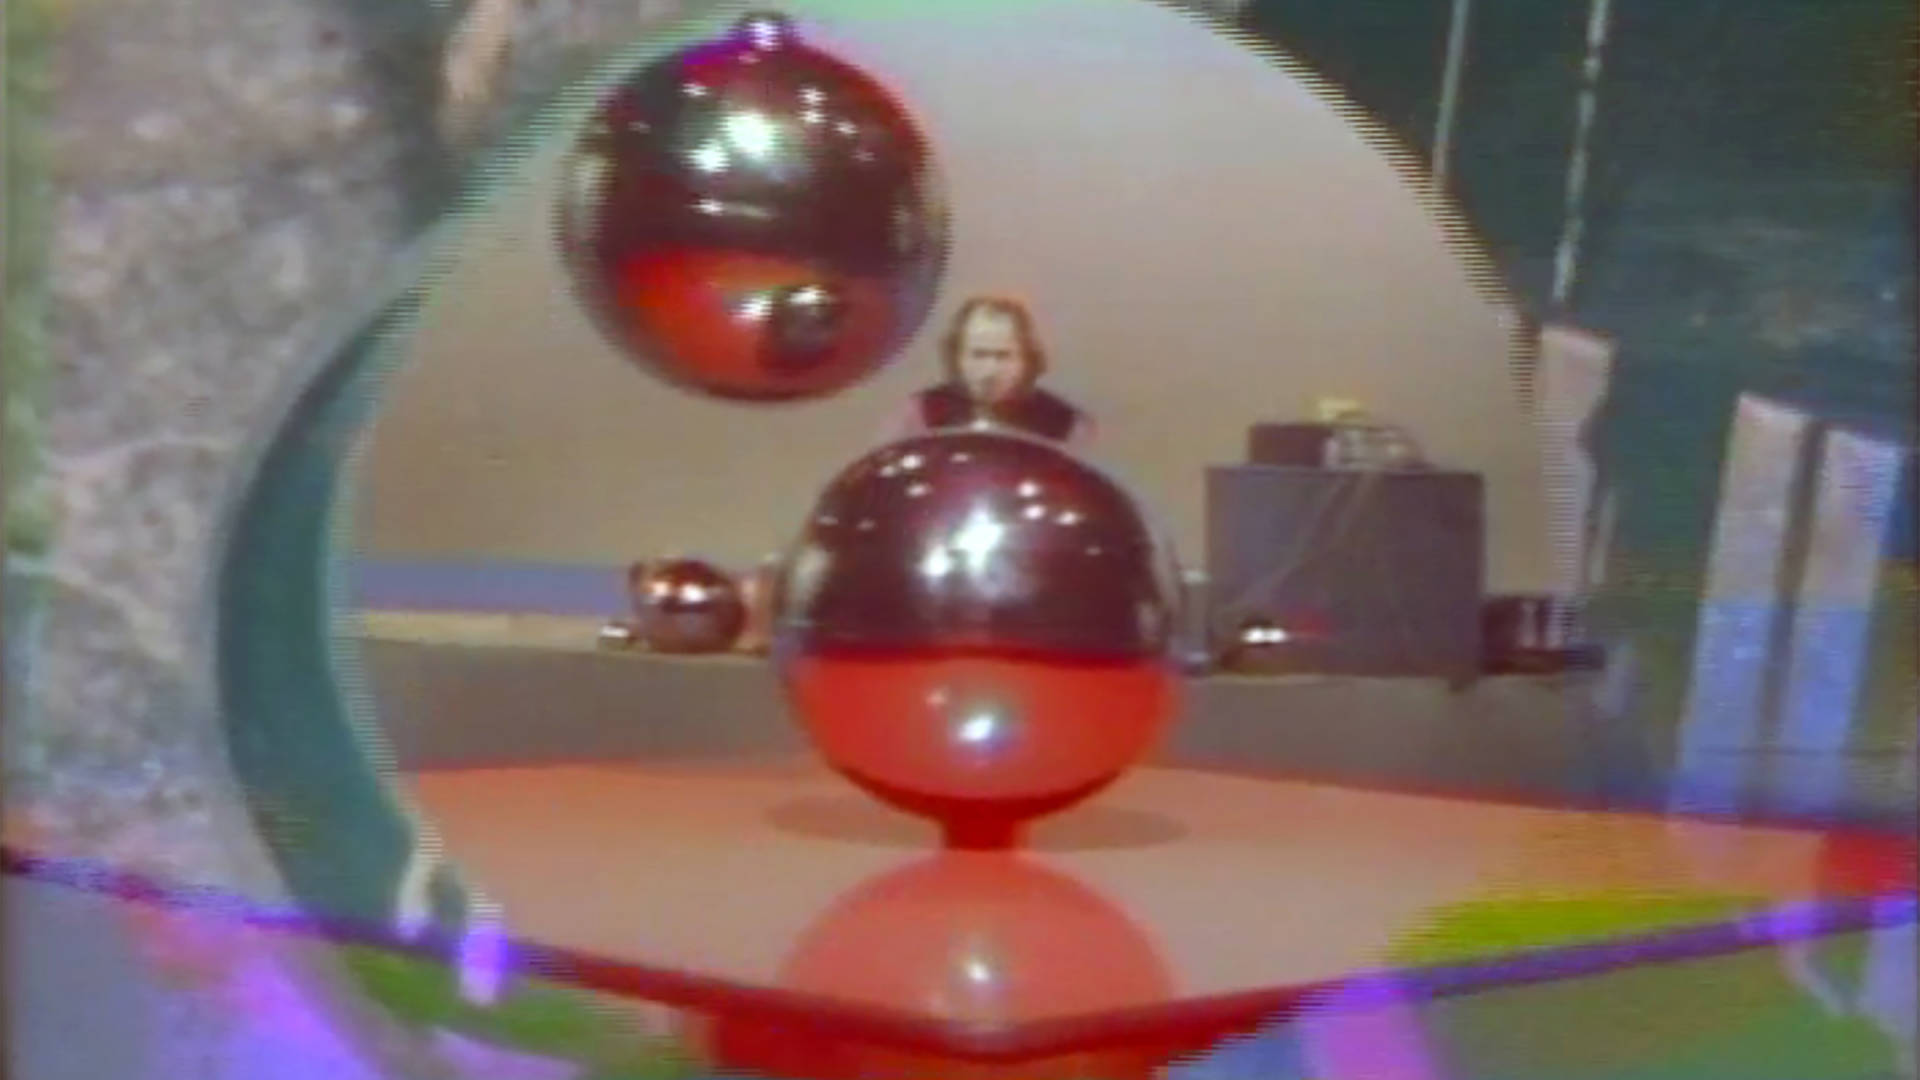 Terry Riley & Arlo Acton, Still from 'Music with Balls,' c. 1968-1969. Courtesy of the UC Berkeley Art Museum and Pacific Film Archive